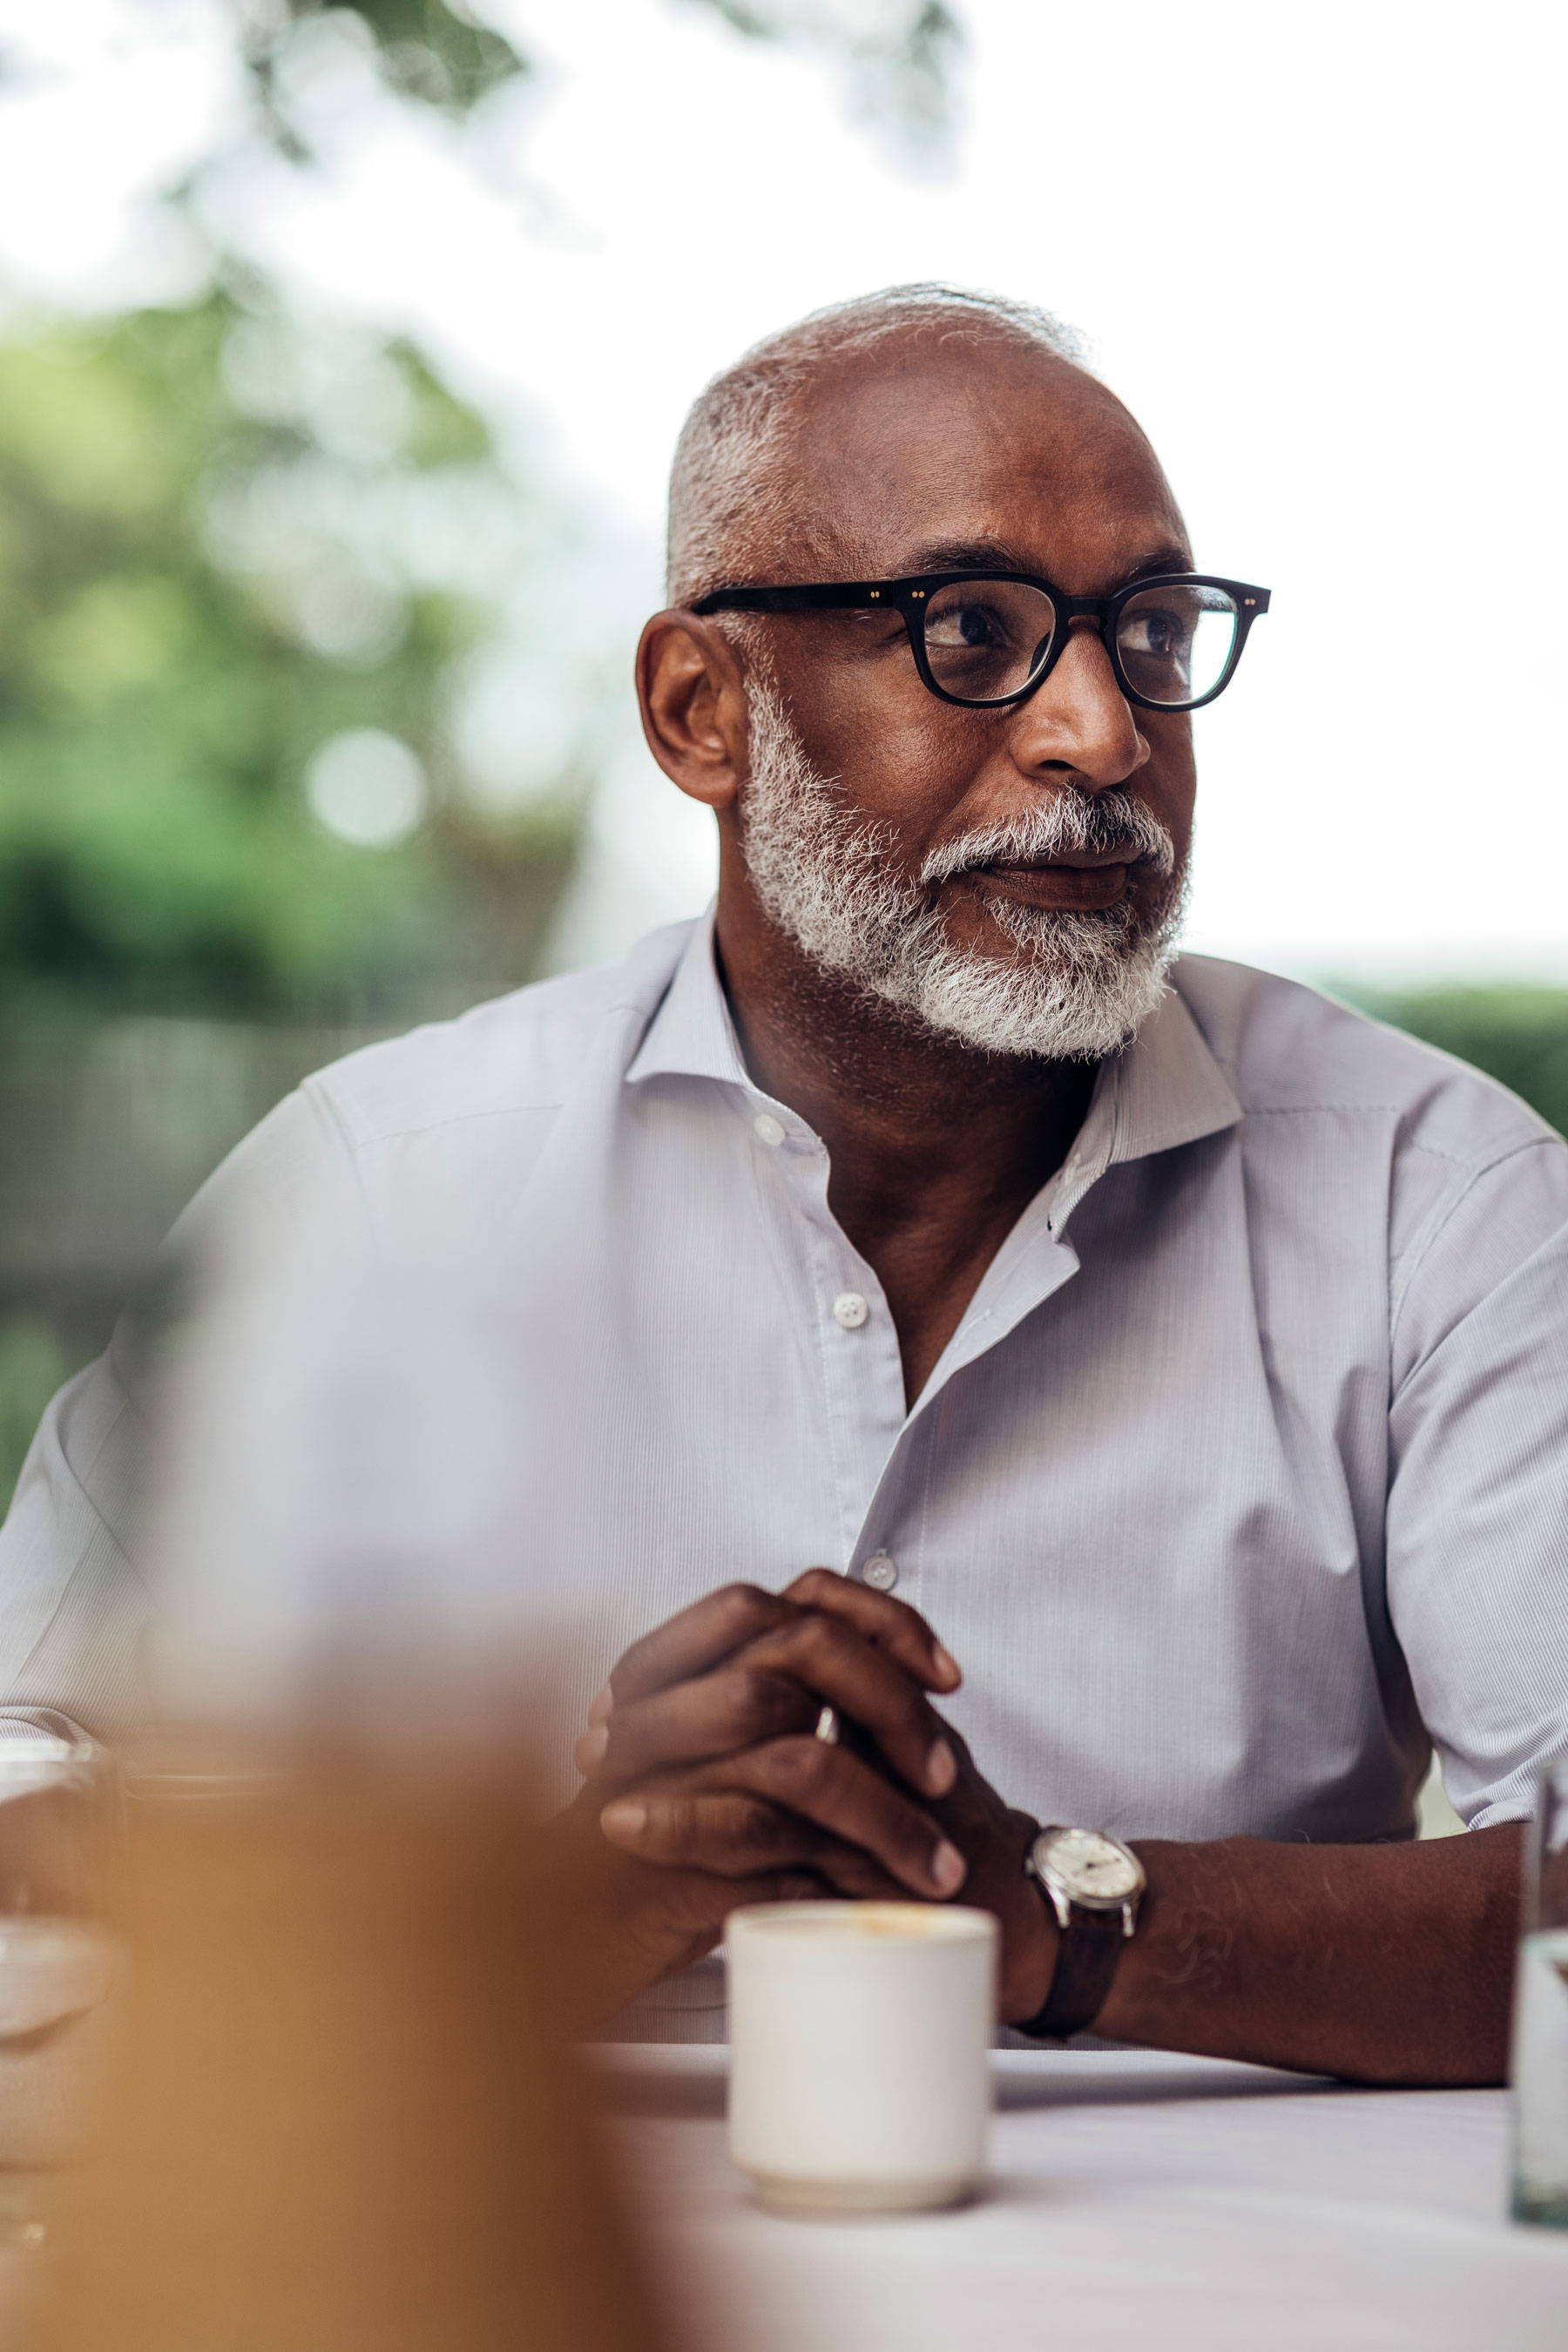 Man wearing glasses in casual shirt